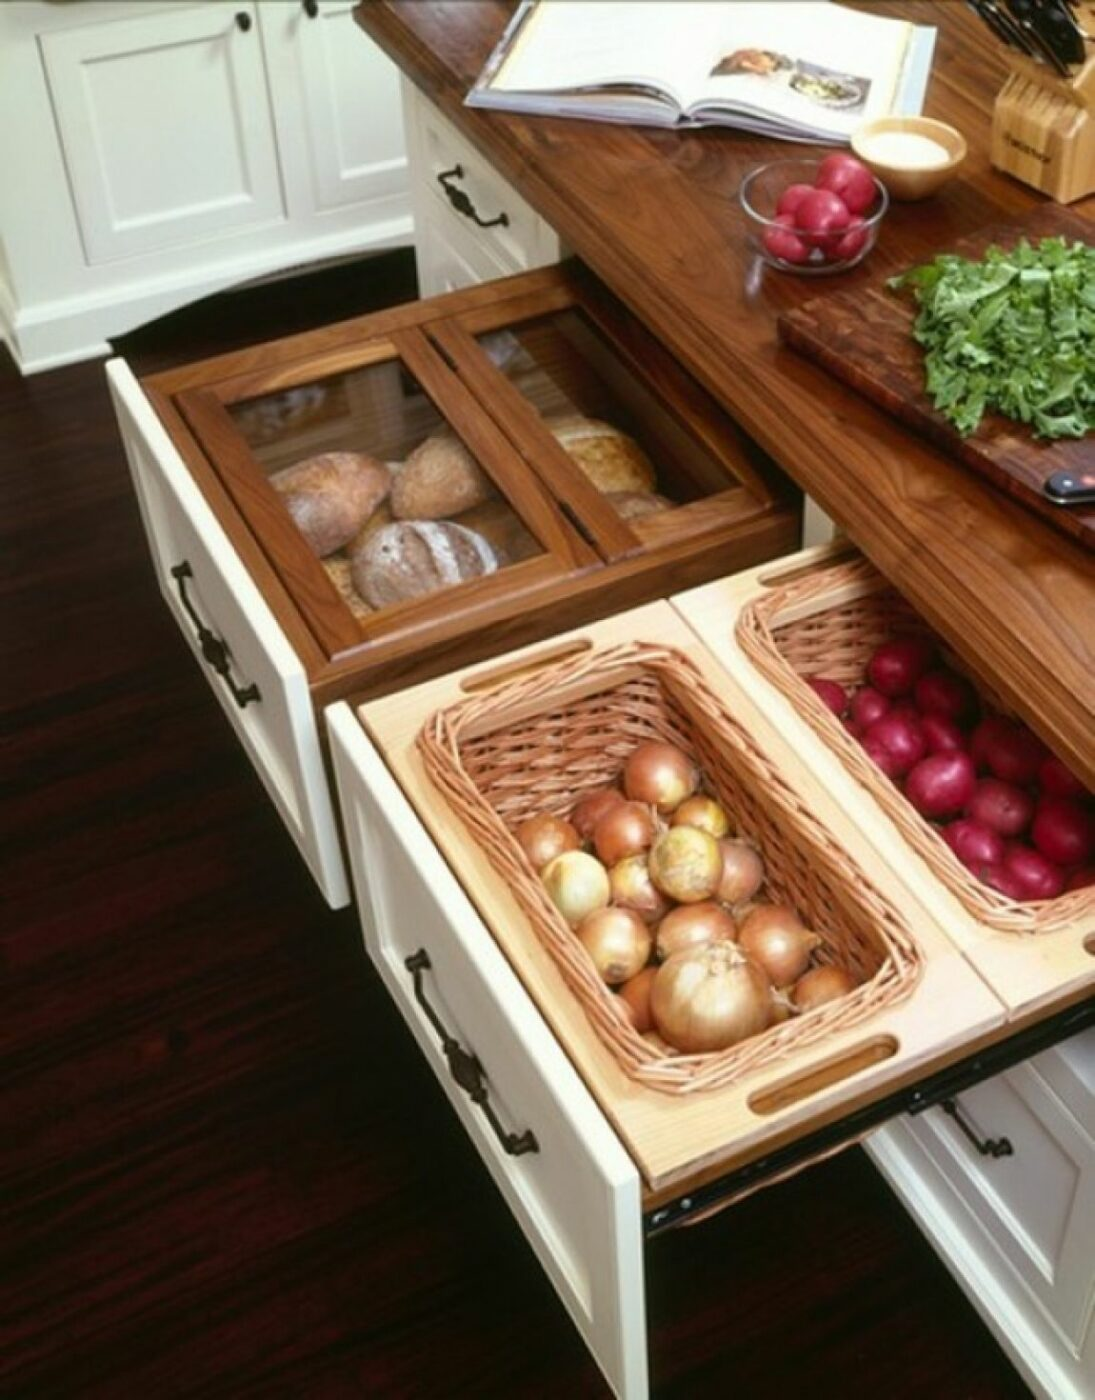 Cut Out Slots in Drawers for Hanging Fruit/ Vegetable Baskets